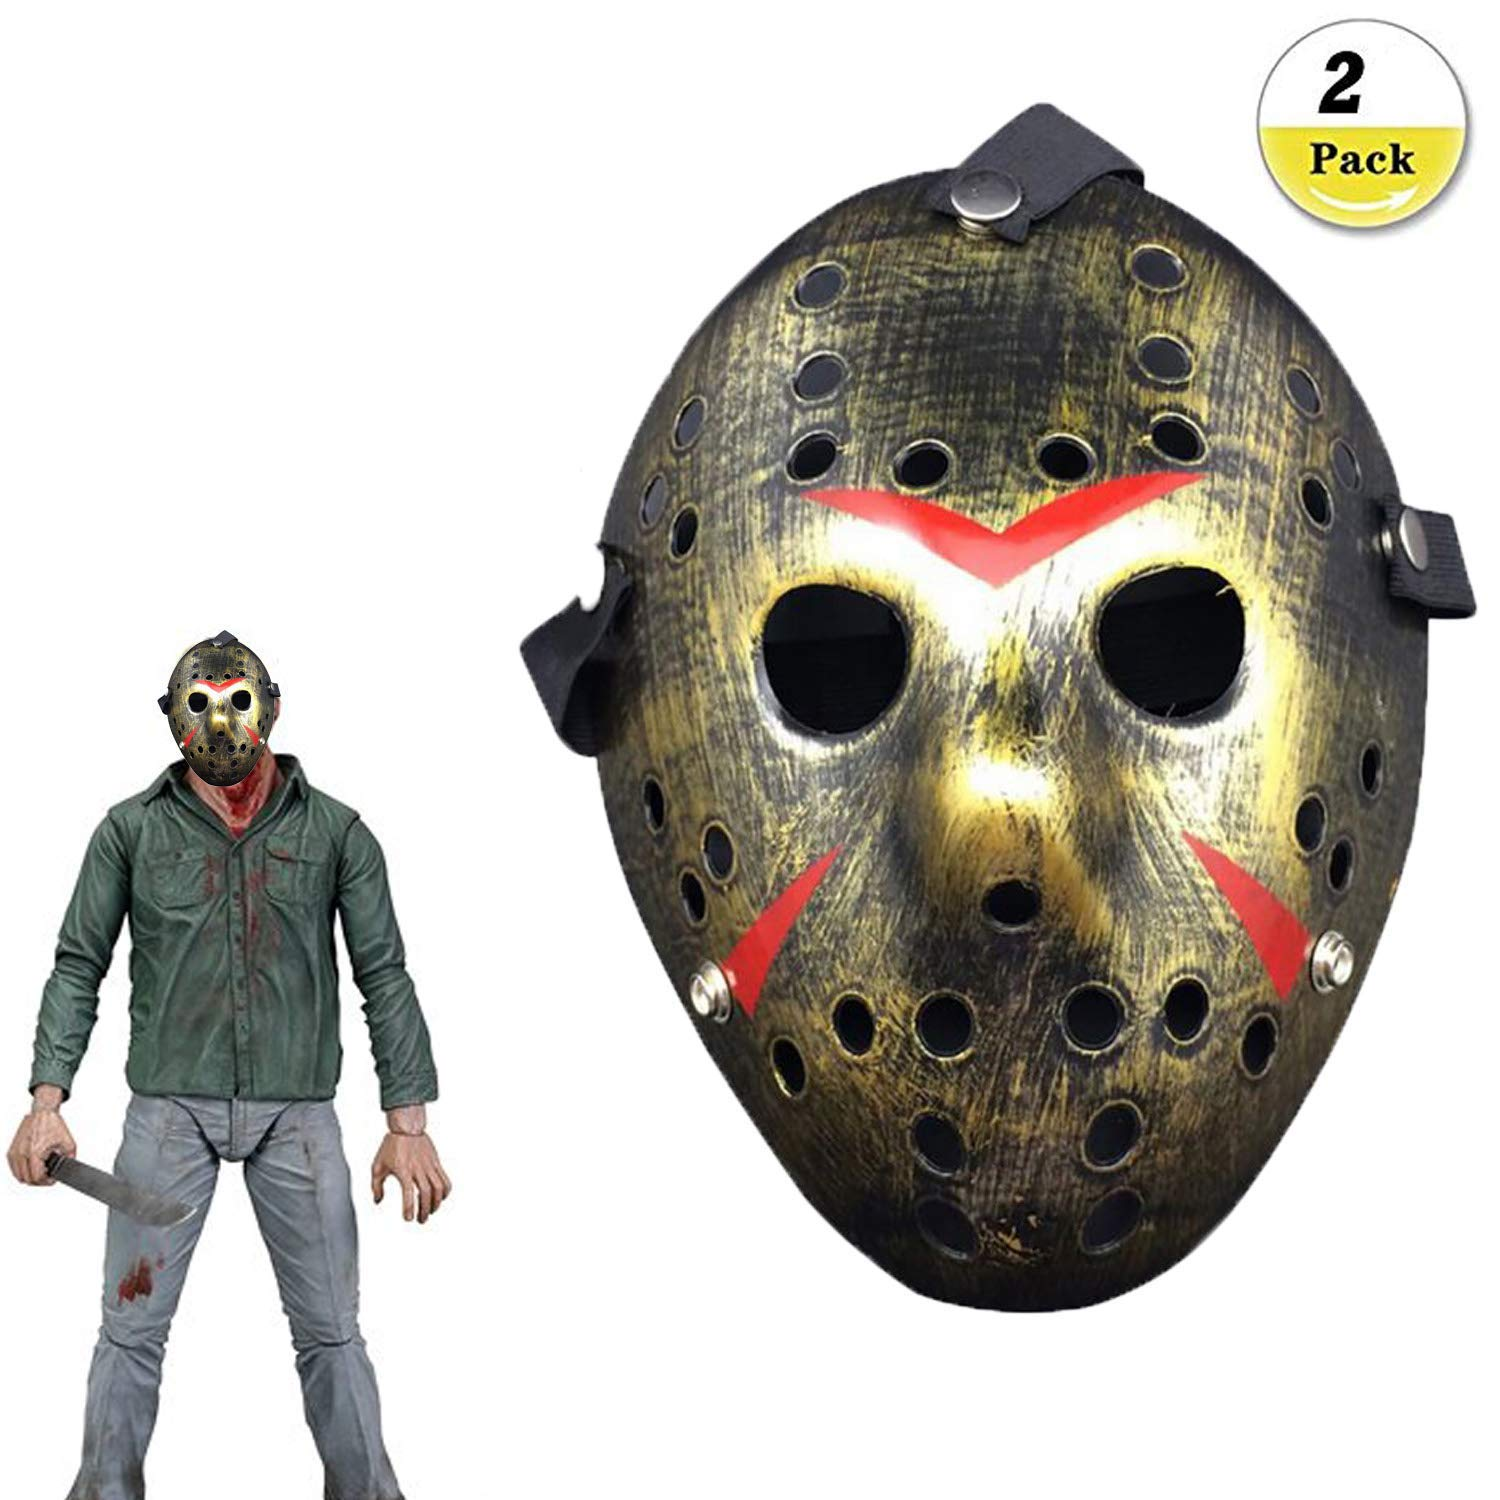 Buck Jason Voorhees Viernes 13 Horror Máscara De Hockey Jason Vs Freddie Scary Disfraz De Halloween Máscara Fiesta: Amazon.es: Hogar